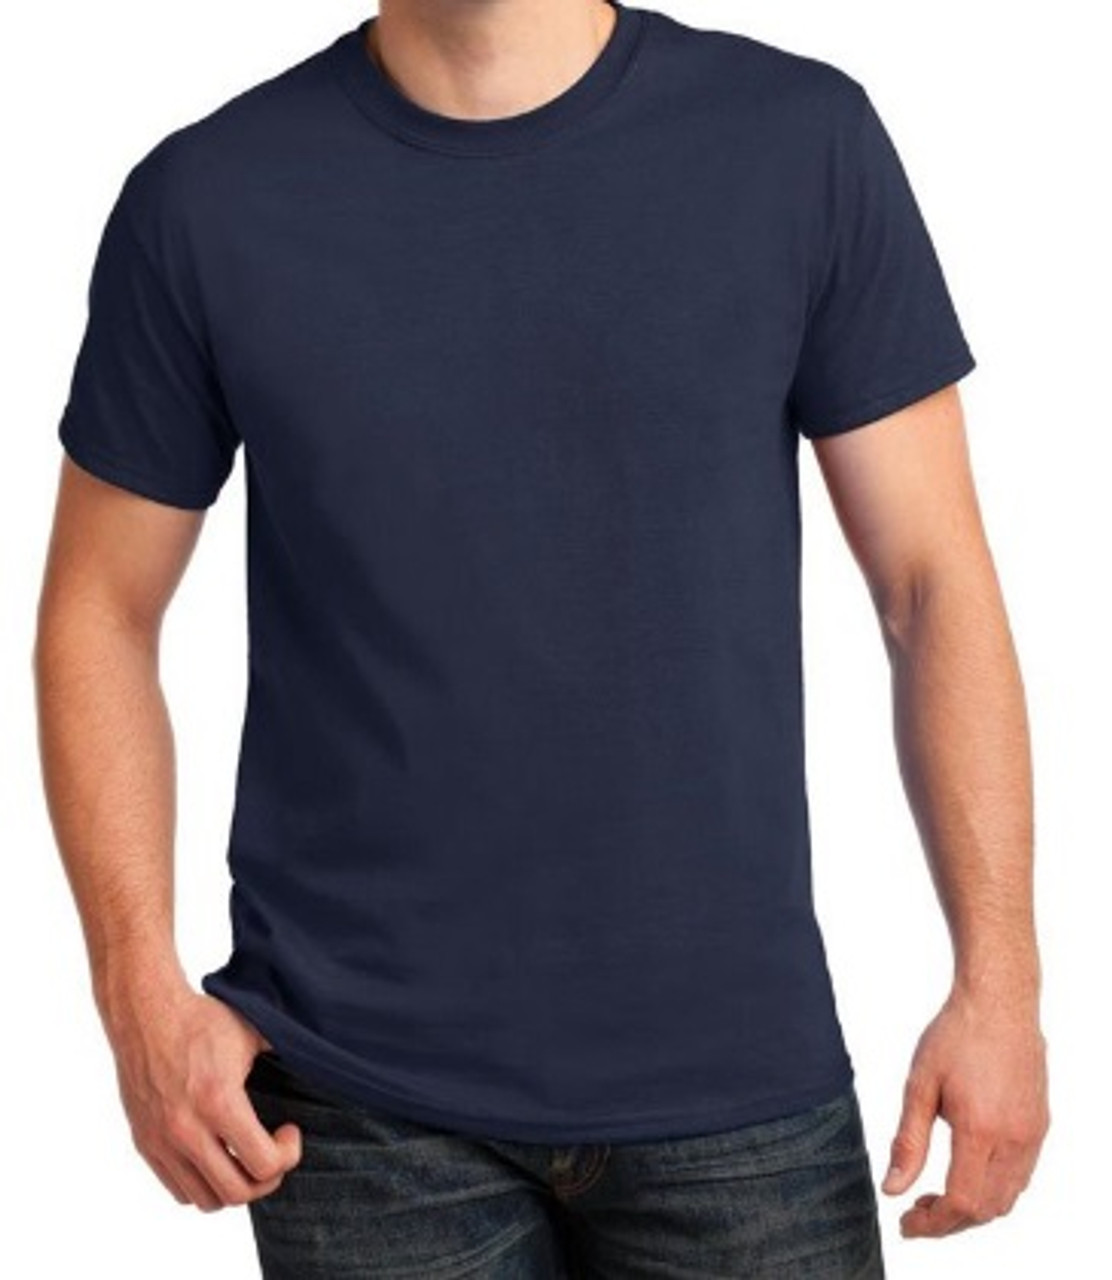 US Military Issue Navy Blue T-Shirt, XXL, NEW!